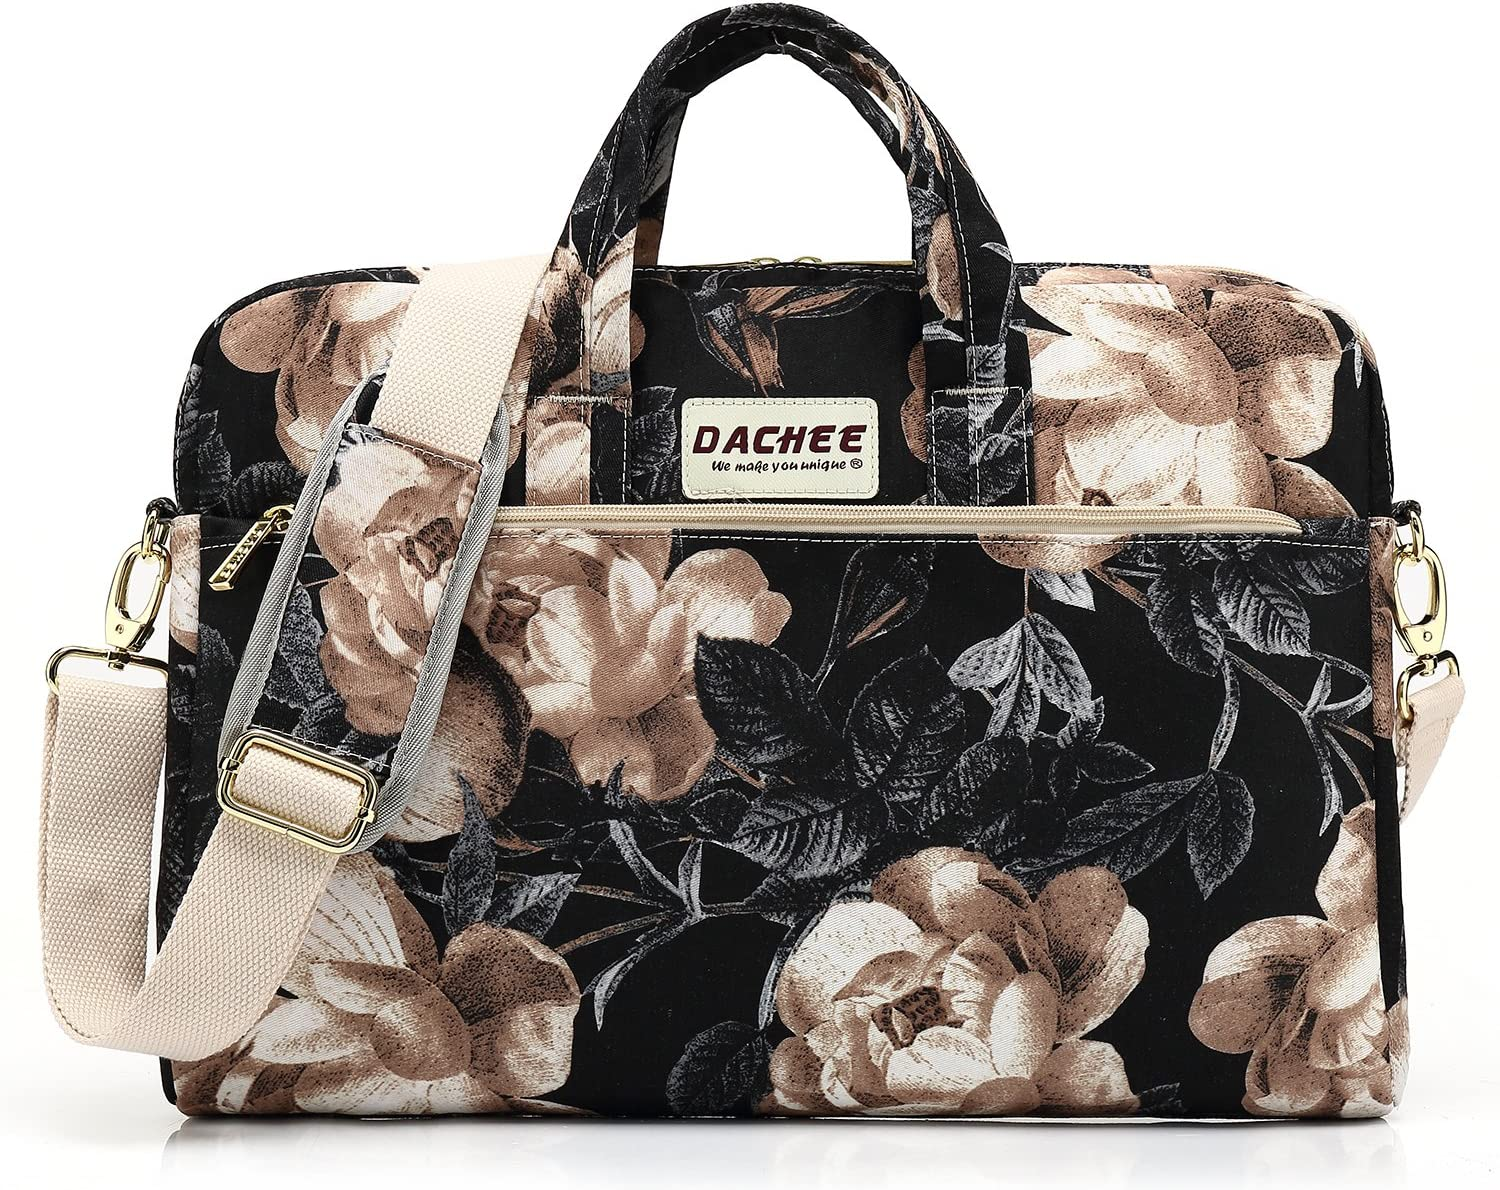 DACHEE Beige Rose Pattern Waterproof Laptop Shoulder Messenger Bag Case Sleeve for 12 inch 13 inch Laptop and 11/12/13.3 inch